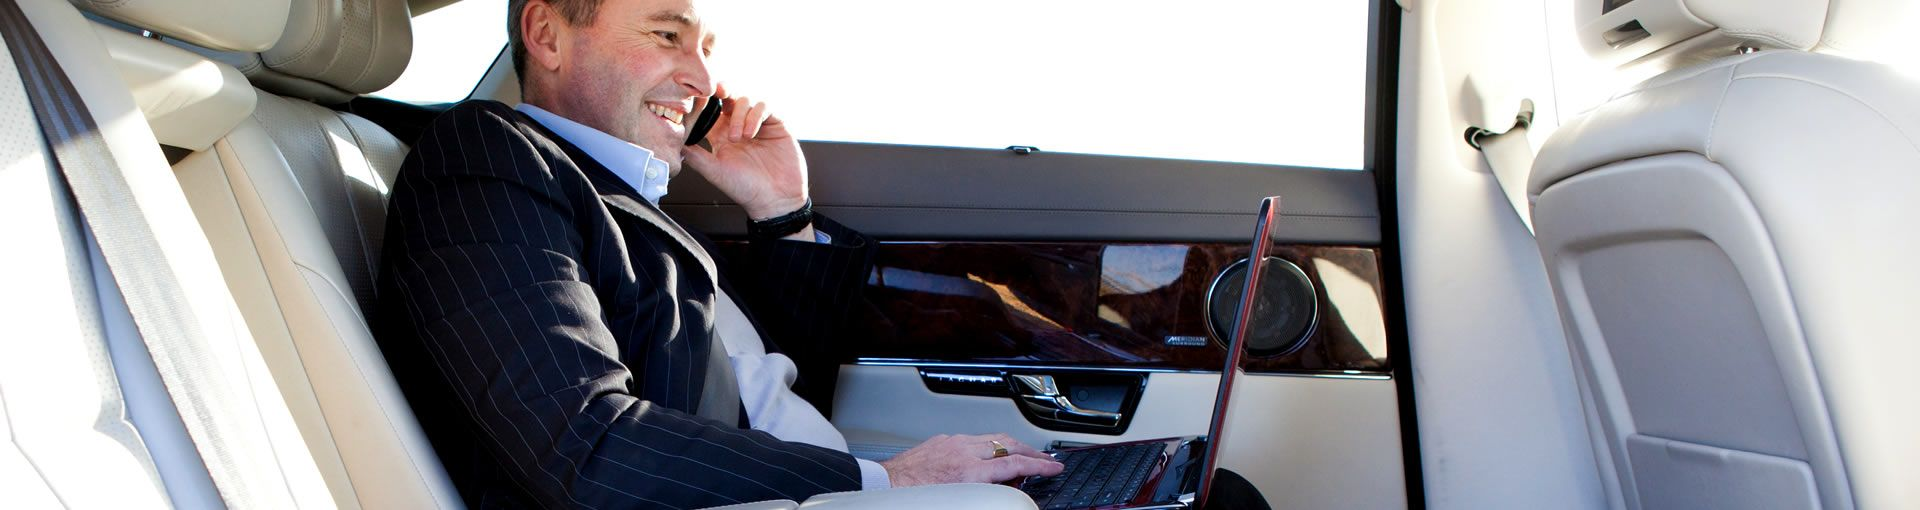 Executive Transportation San Diego Corporate Travel Services